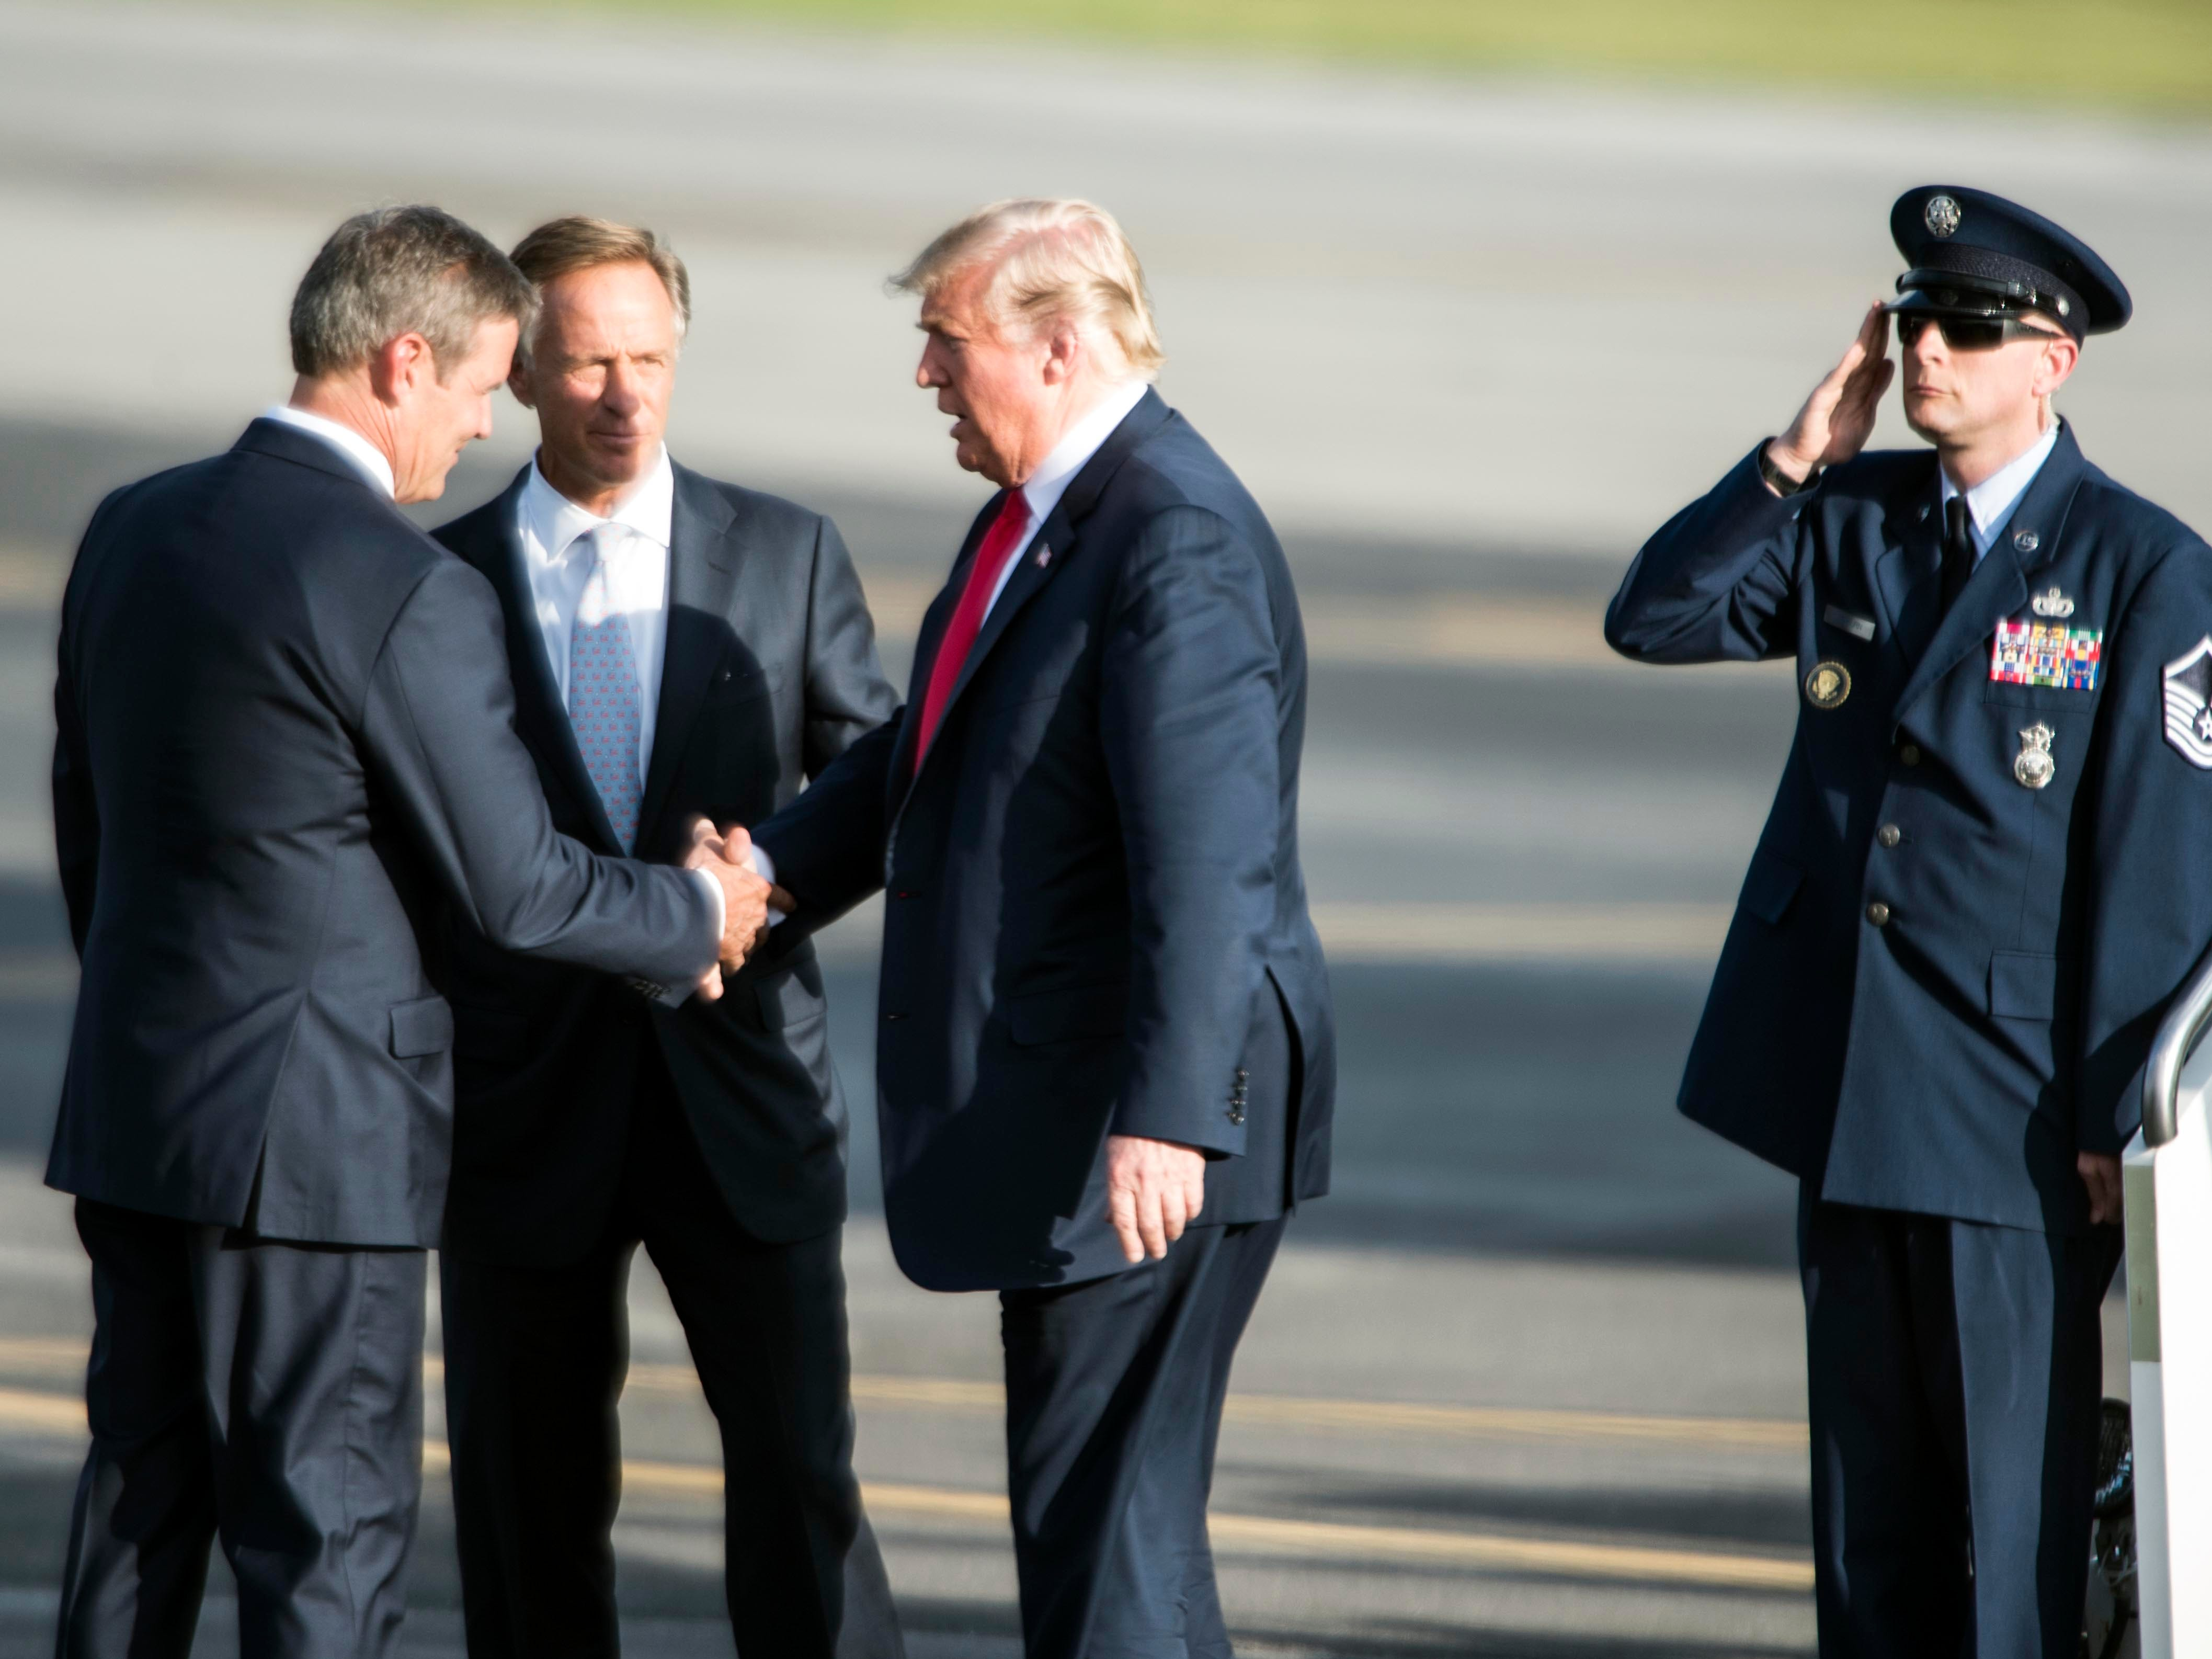 President Donald Trump greets Governor Bill Haslam and candidate for governor Bill Lee after arriving at Tri-City Aviation on Monday, October 1, 2018.